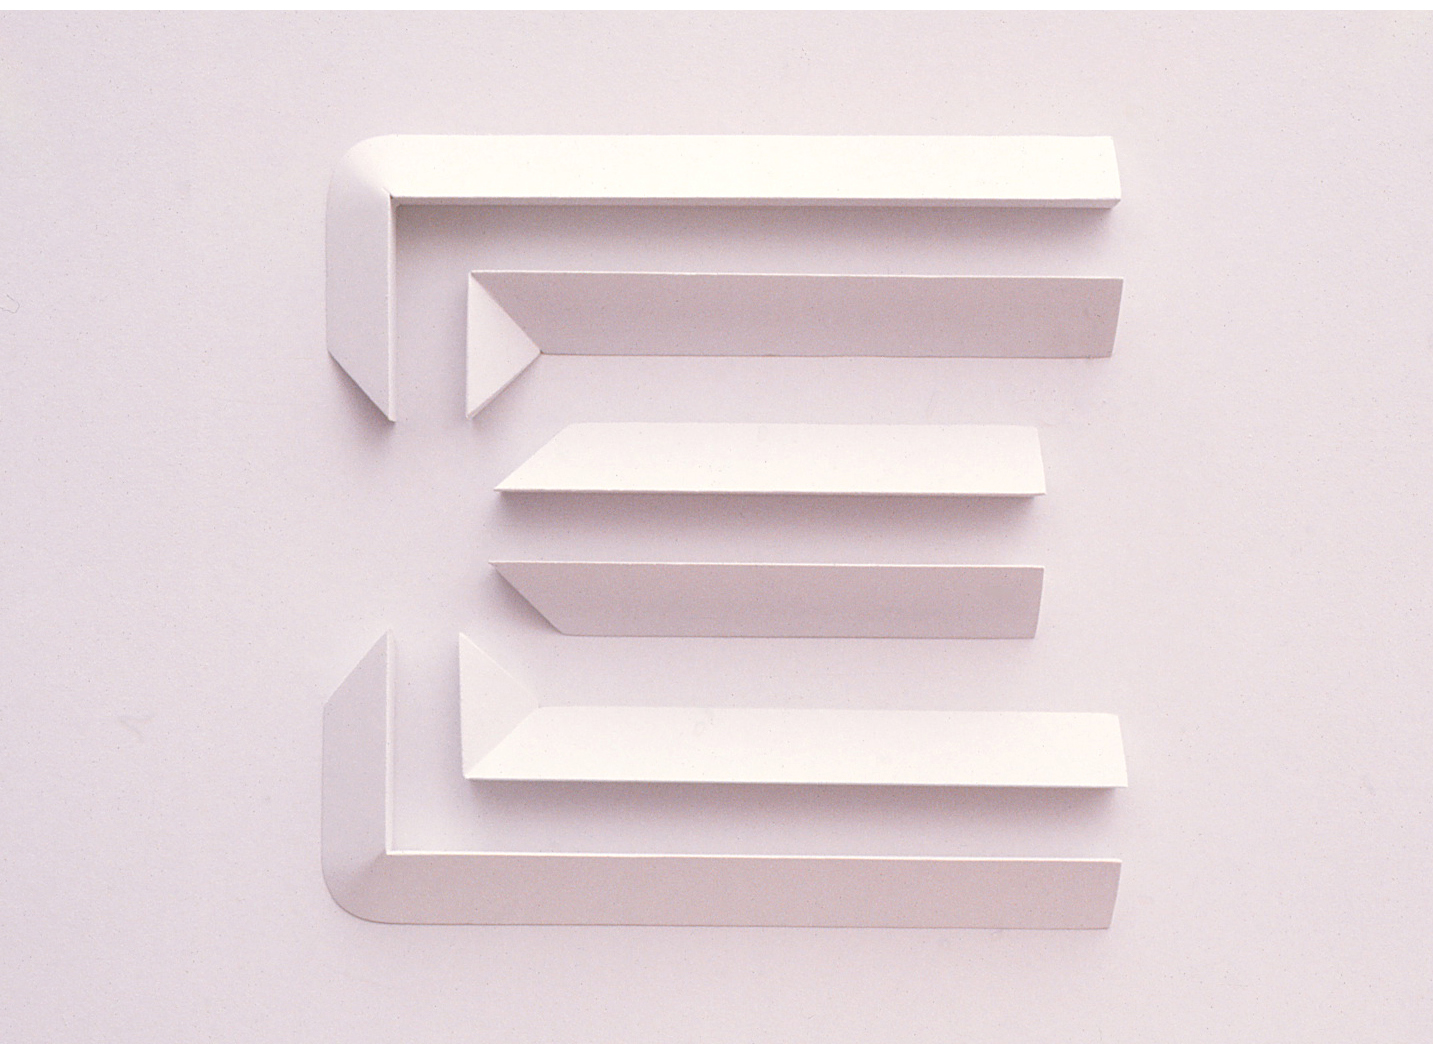 White sculpture of the E logo symbol featuring shadows to show depth and detail.